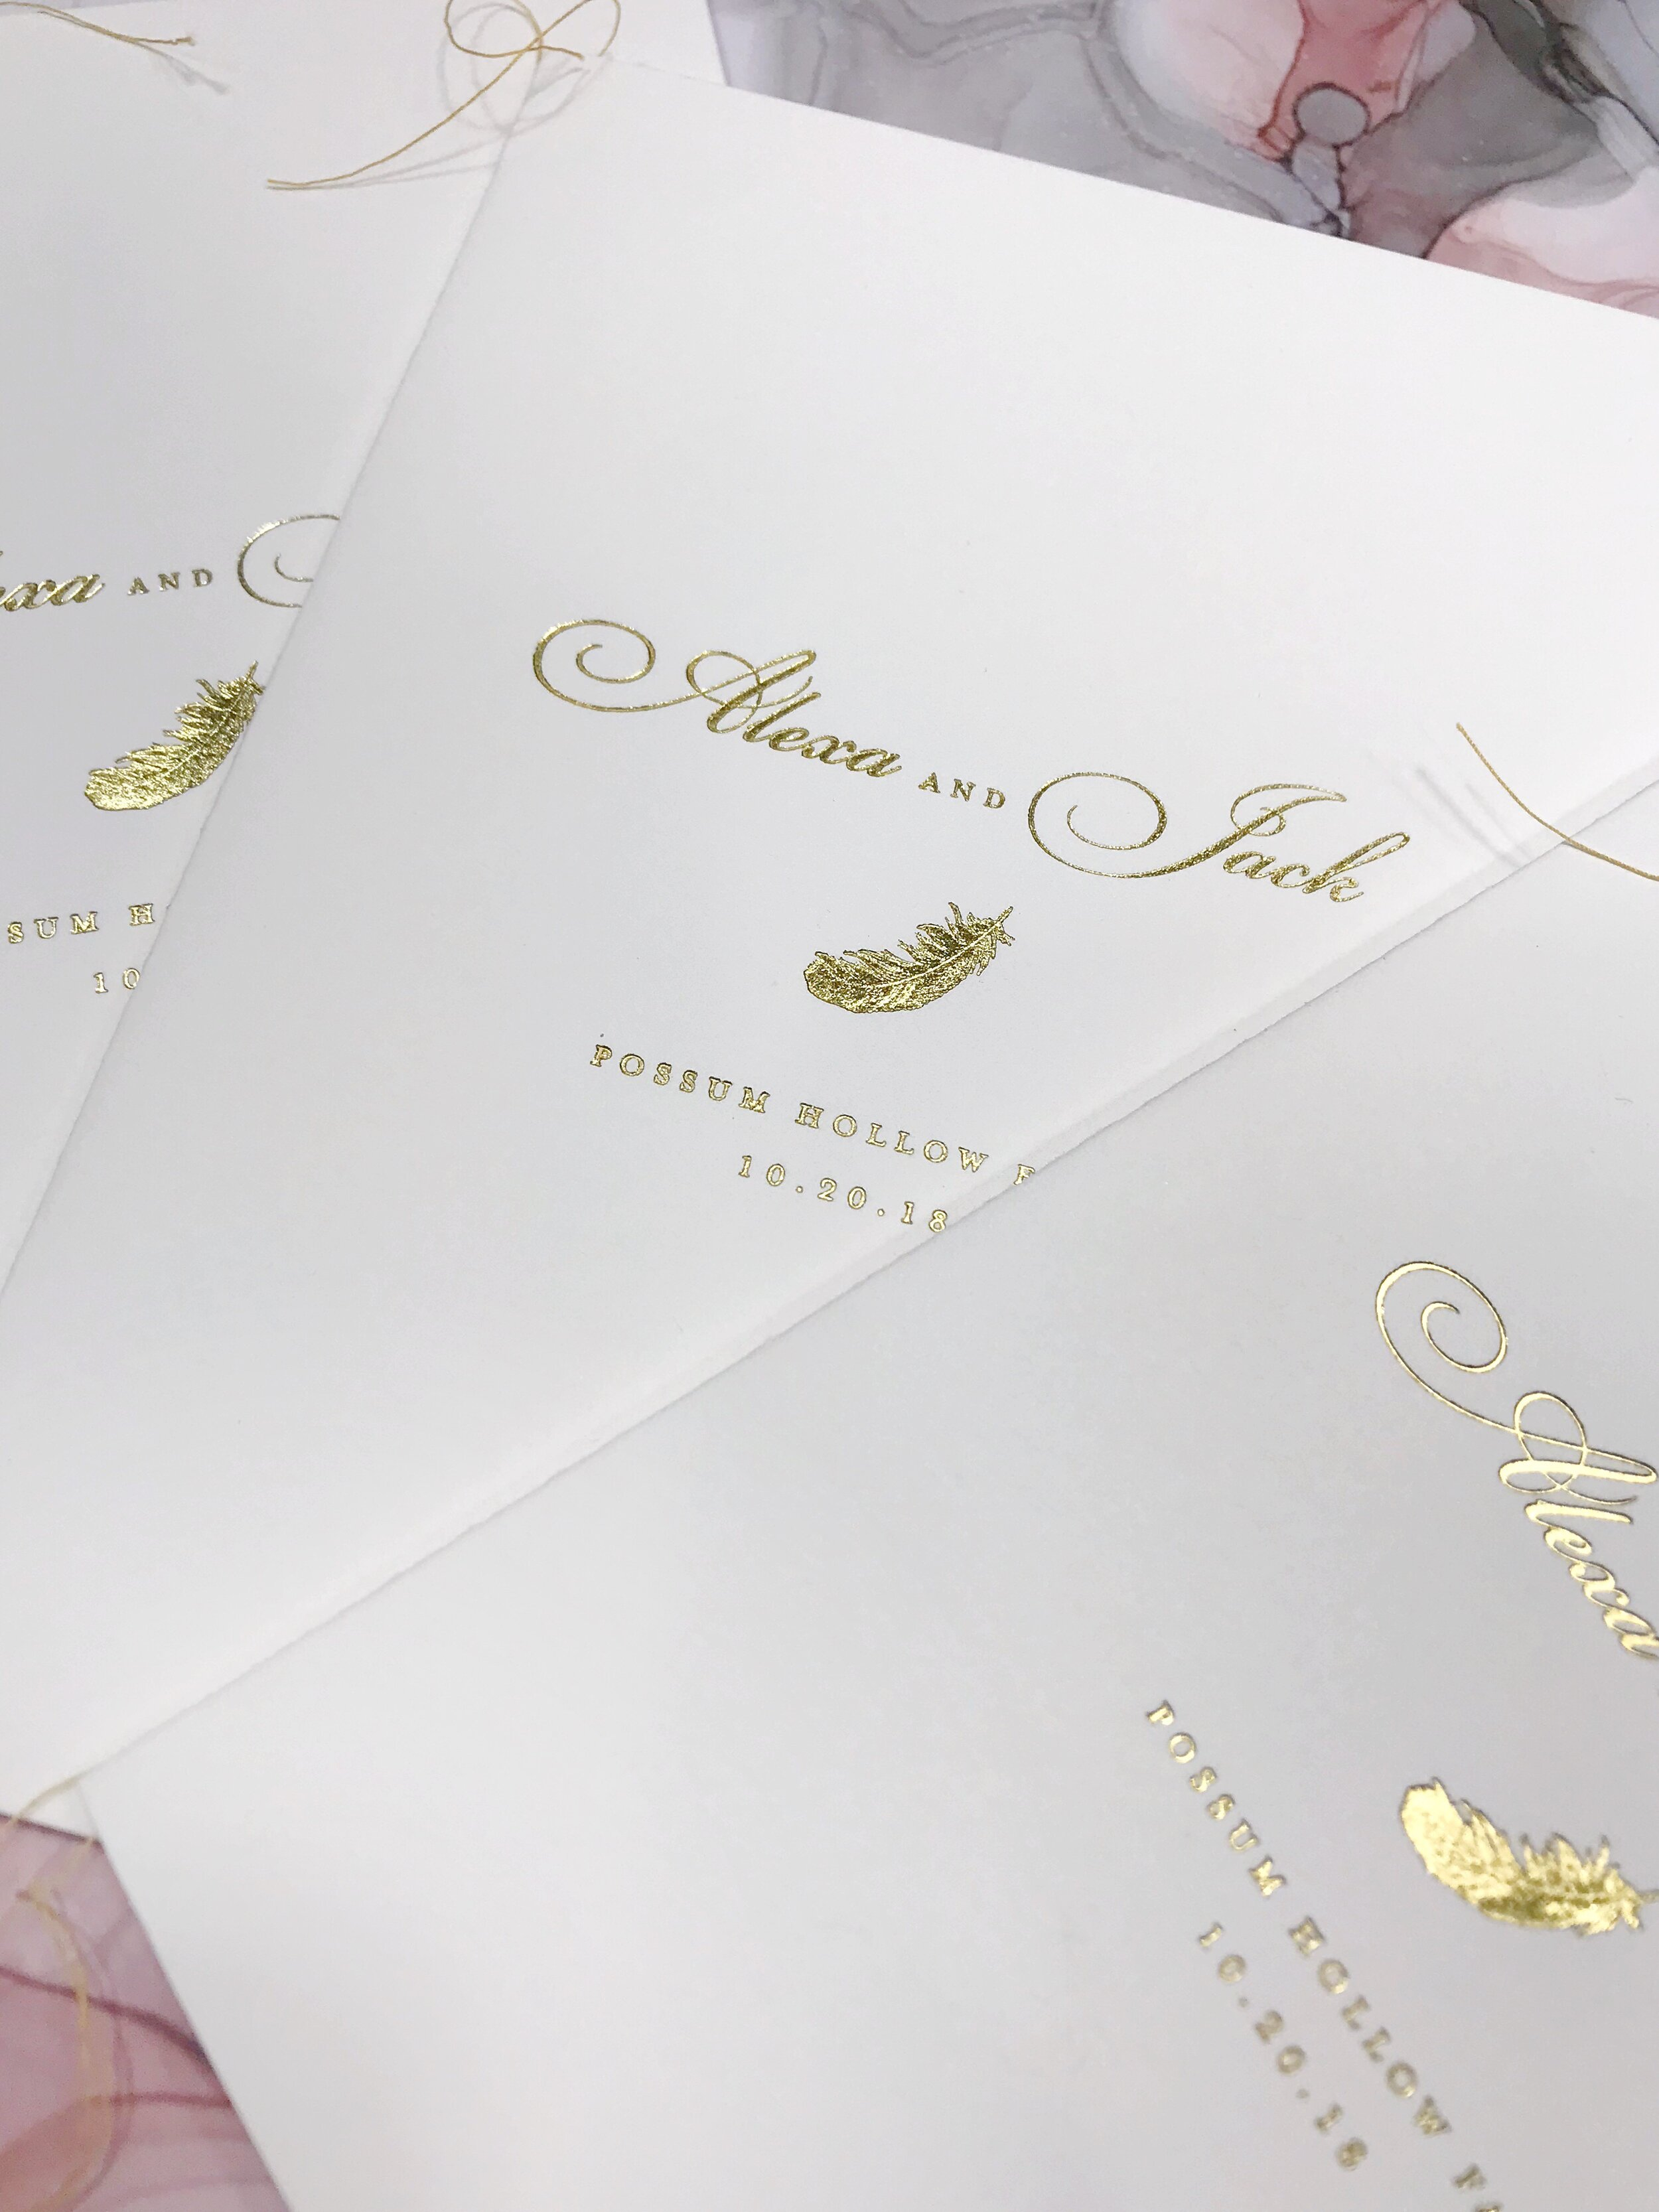 Wedding program with gold foil and feather motif by Poeme